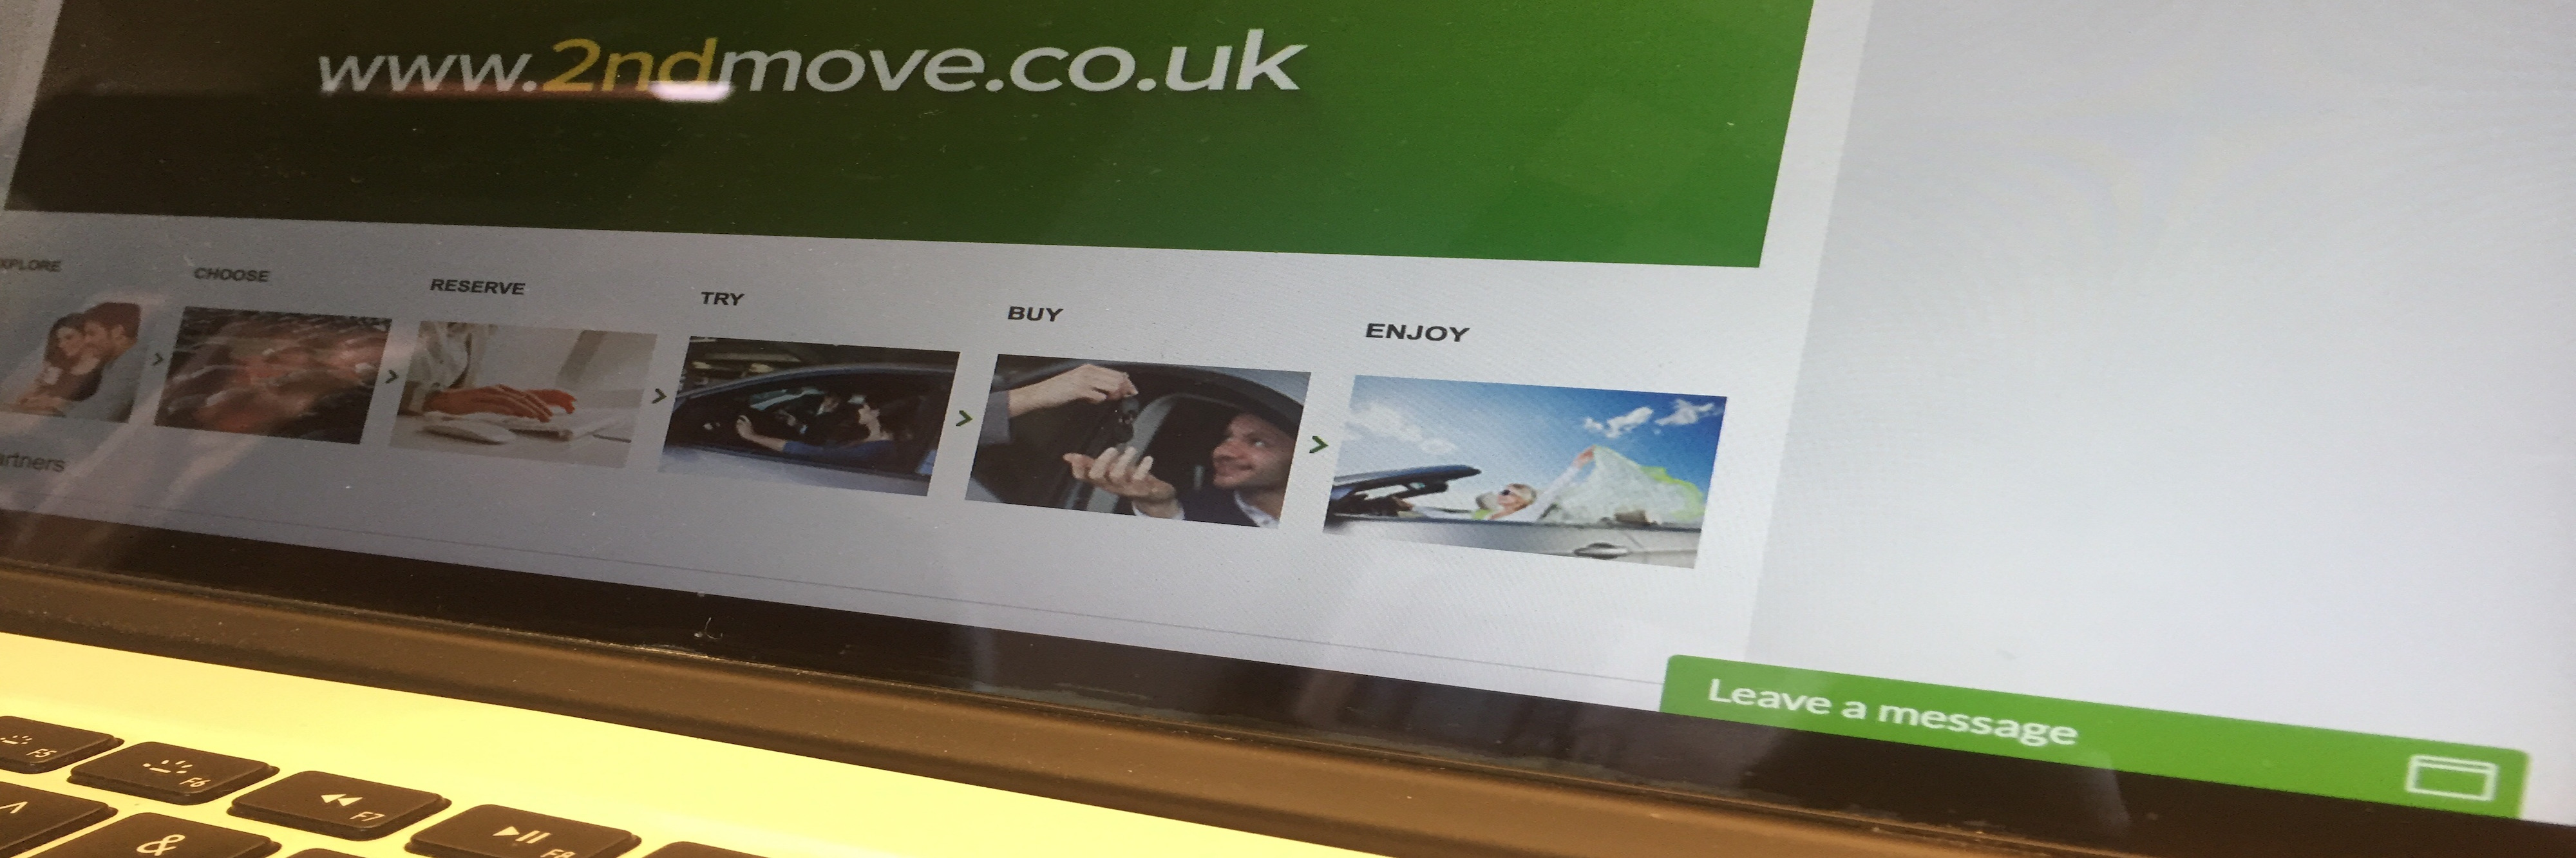 Europcar Case Study With Livechat